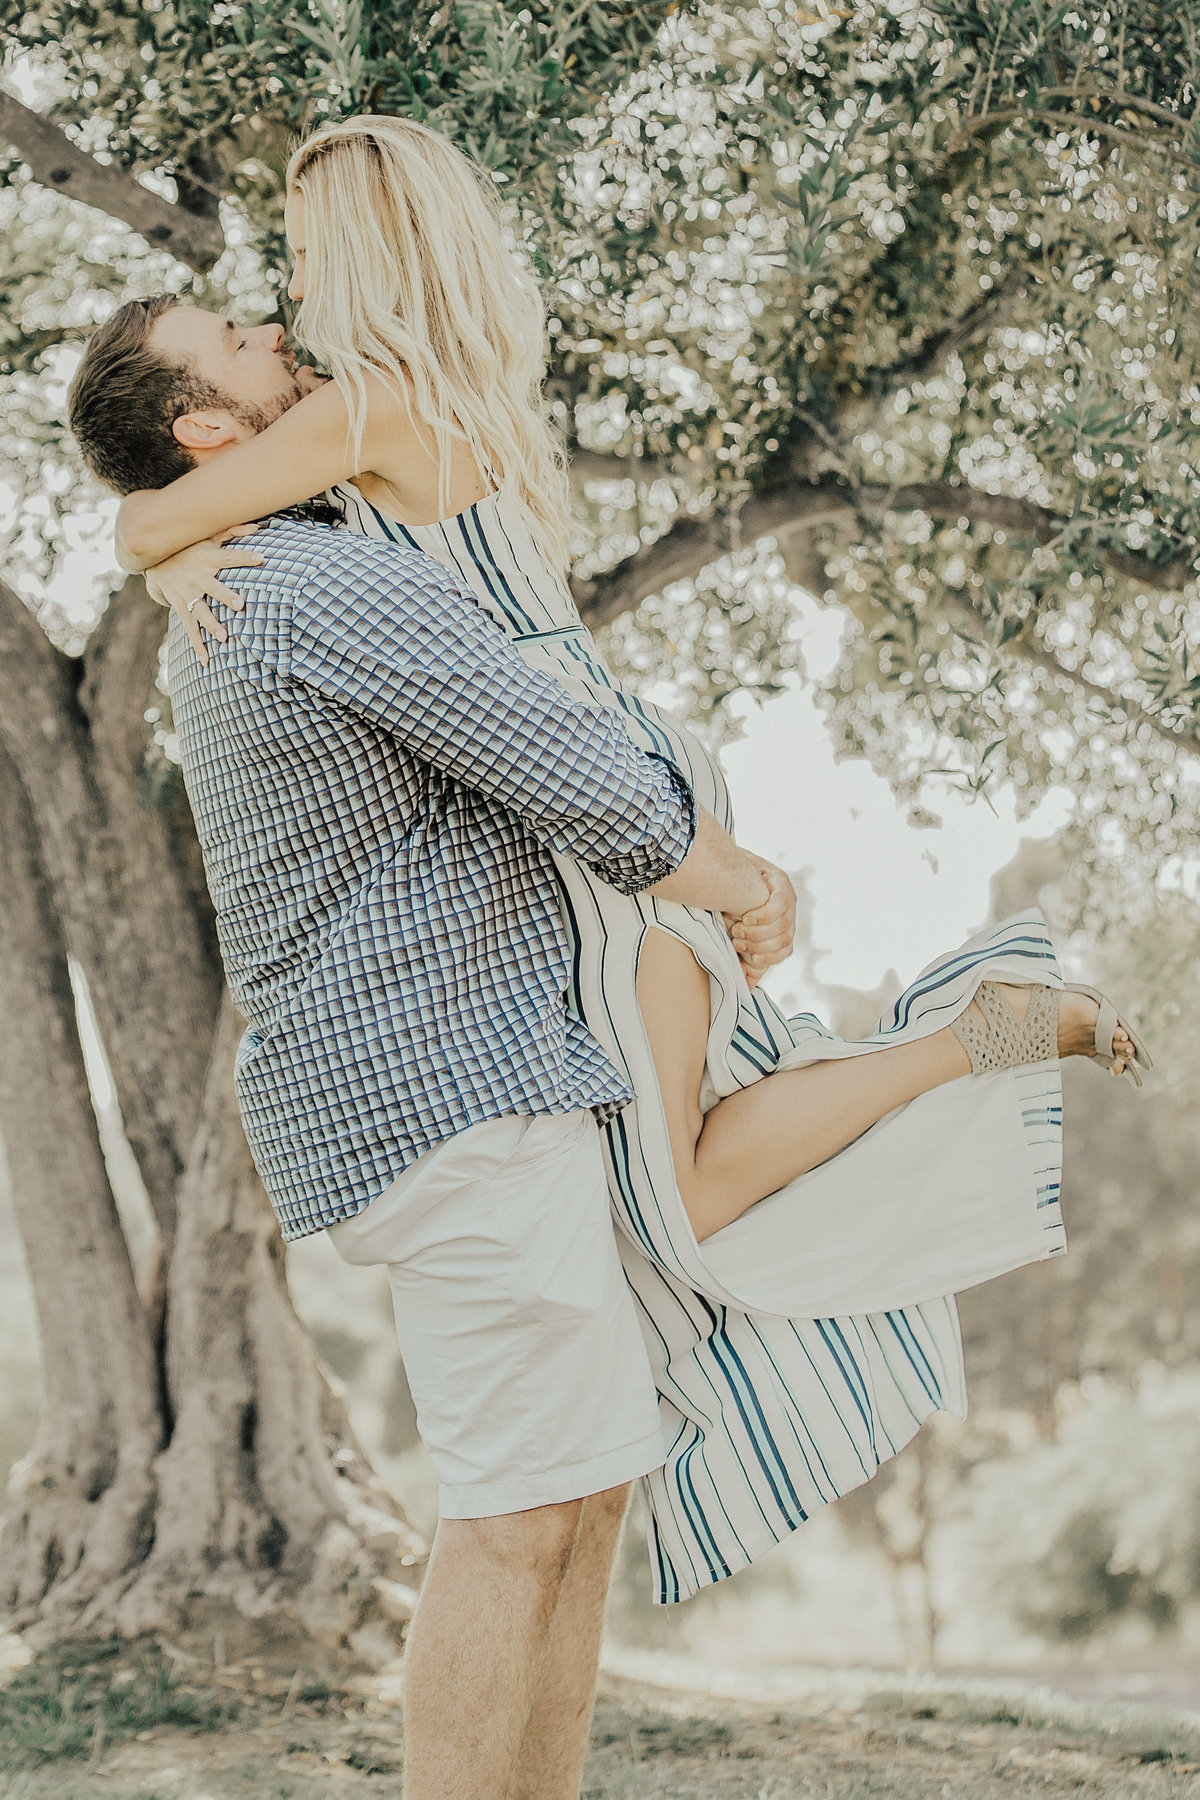 Babsie-Ly-Photography-Fine-Art-Film-Surprise-Proposal-Photographer-Temecula-Thornton-Winery-California-009